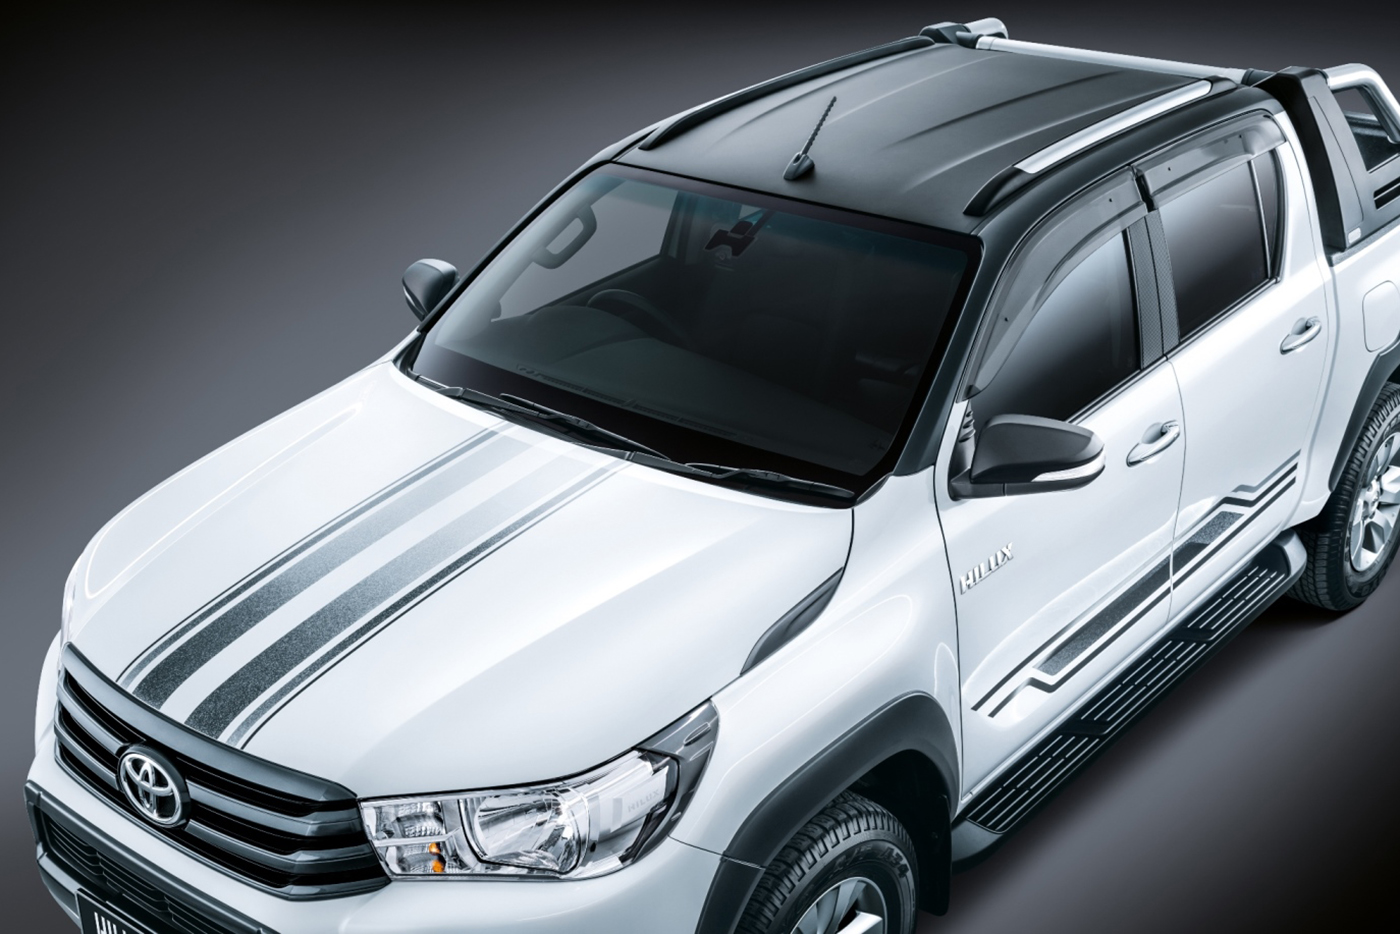 toyota-hilux-24g-limited-edition-5.jpg